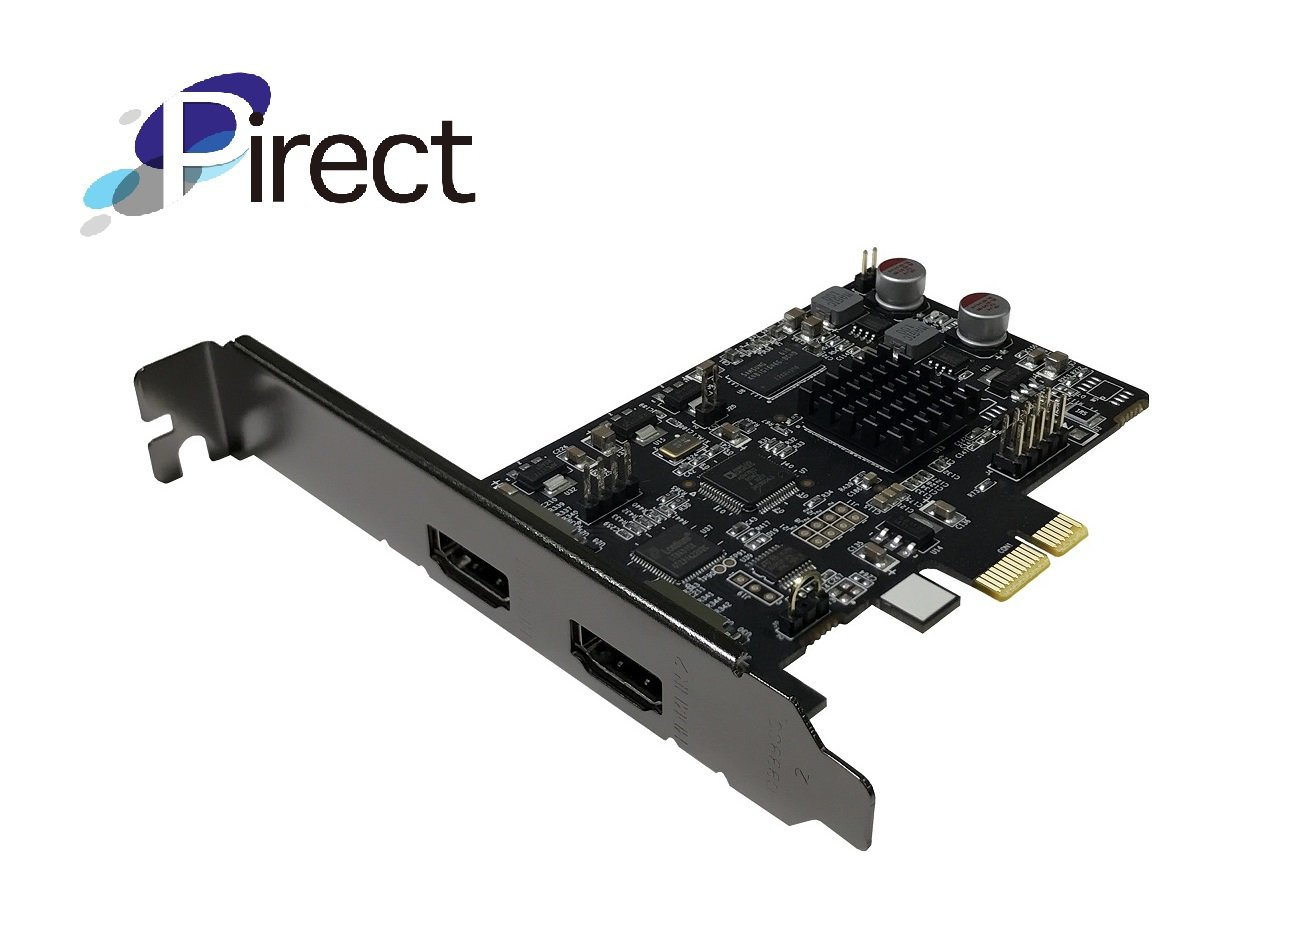 H.264//AVI software encoding Pirect Uldra-P2 Video Capture card PCI-Express x1 with HDMI bypass output stream and record in 1080p30 Ultra low latency preview